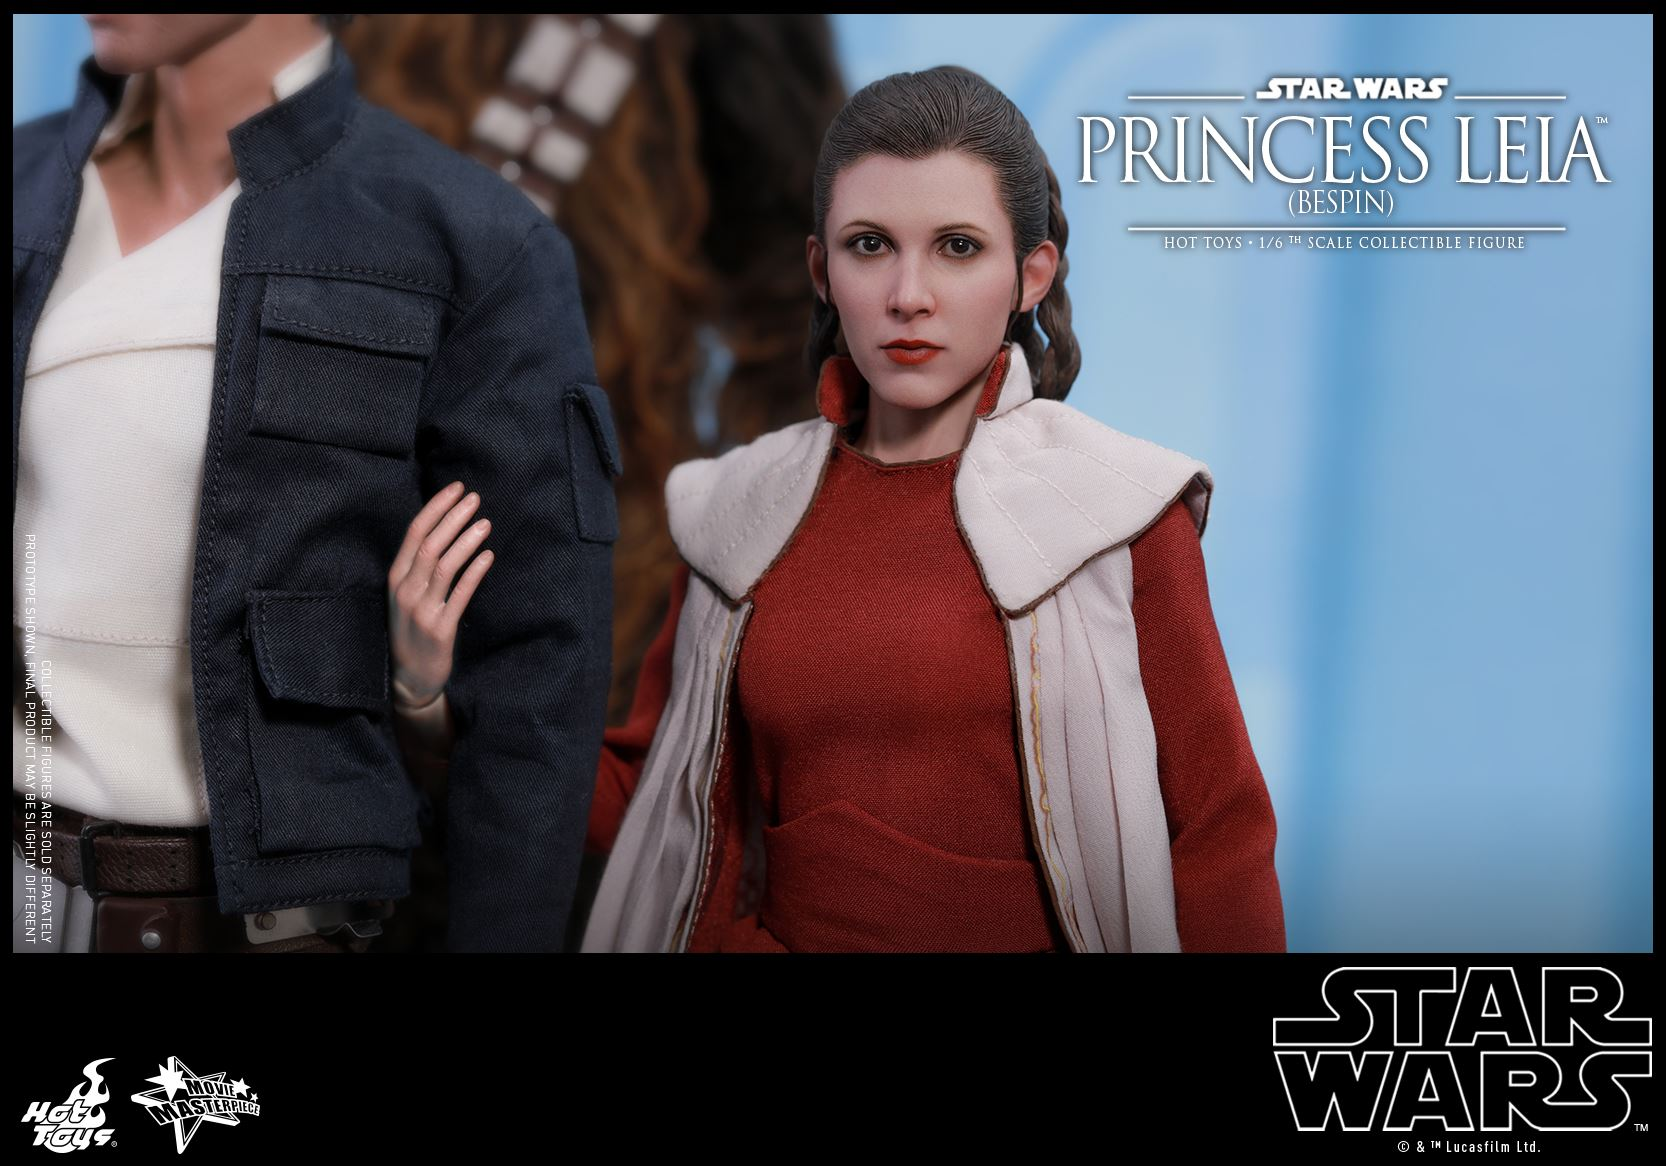 Hot Toys Reveals Stunning Princess Leia Bespin Star Wars Action